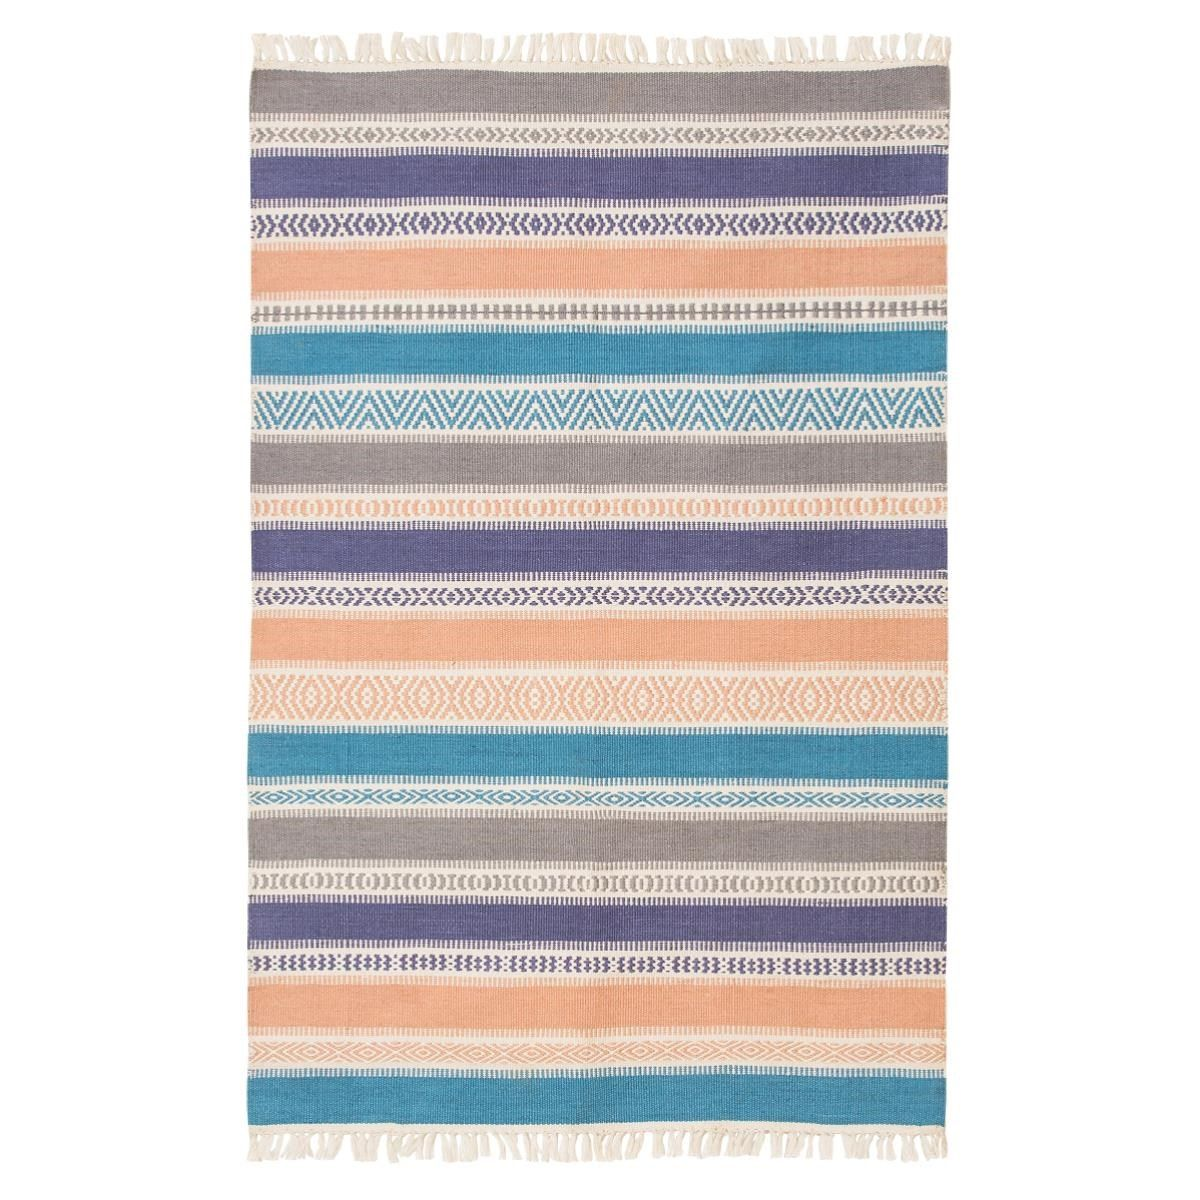 outdoor rug! Striped patio rug or mat for indoors or outdoors available in blue or terracotta, woven design. From recycled plastics, easy to wash. Fair Trade.